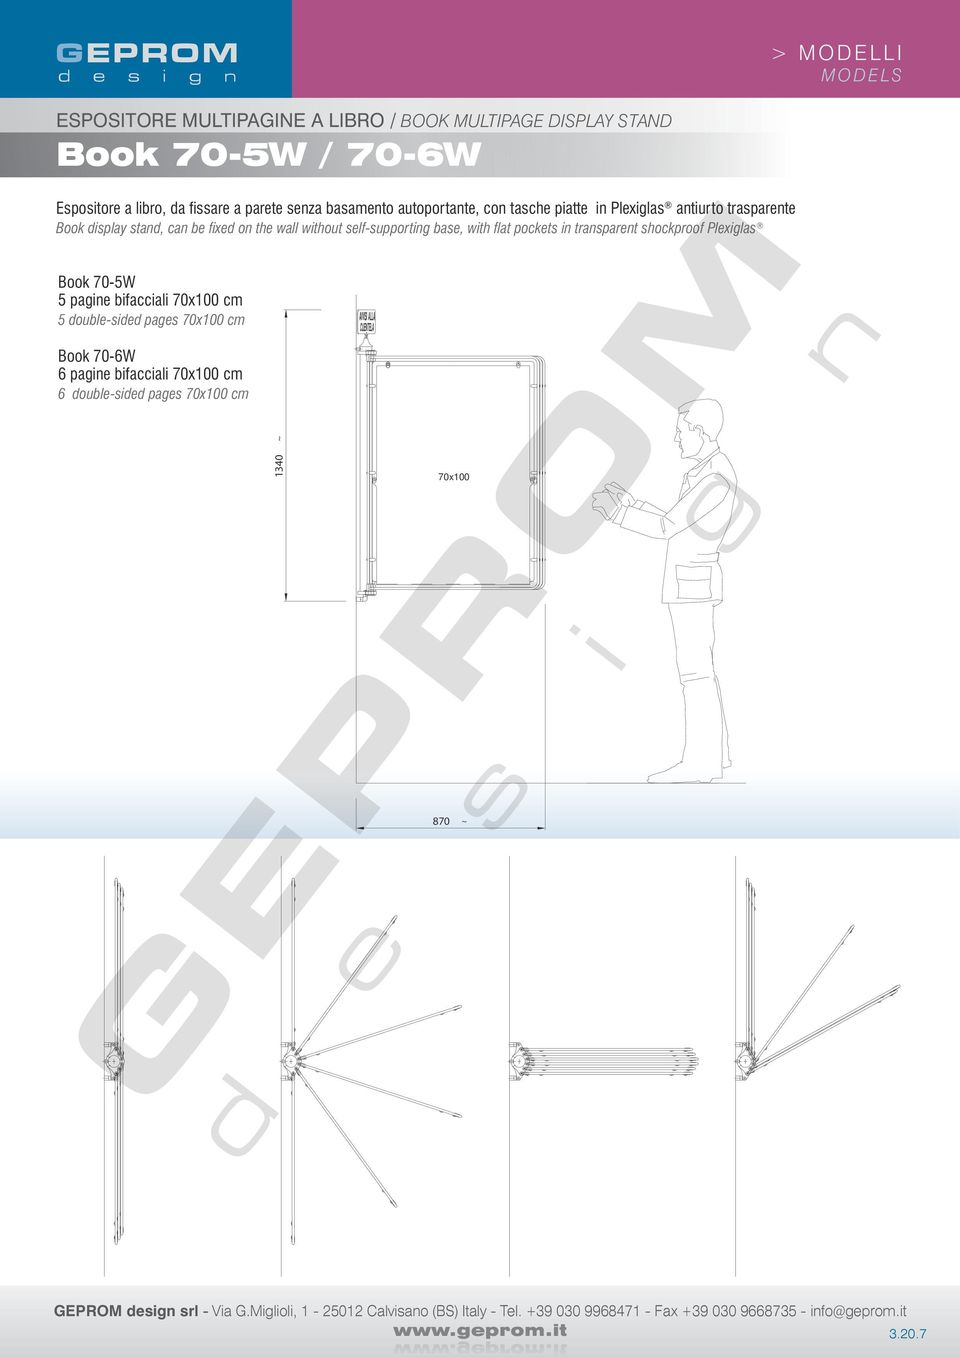 pockets in transparent shockproof Plexiglas Book 70-5W 5 pagine bifacciali 70x100 cm 5 double-sided pages 70x100 cm